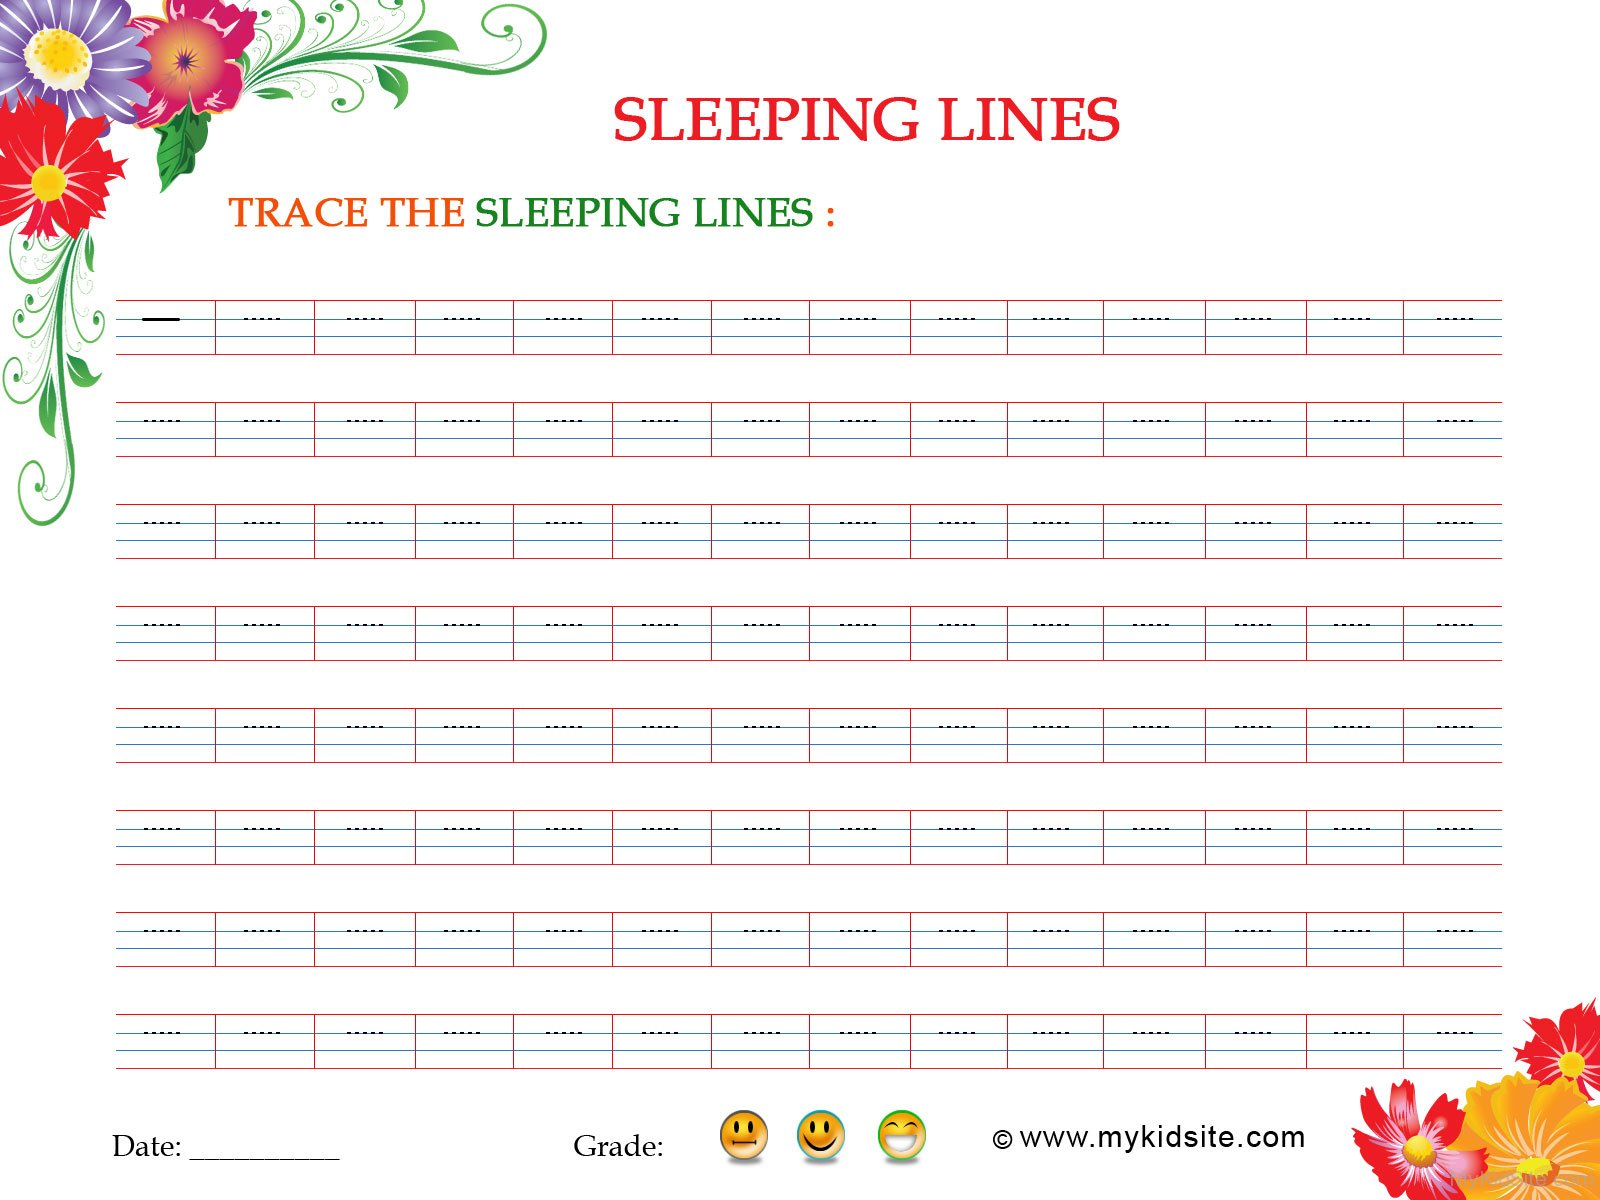 Sleeping Lines Worksheet